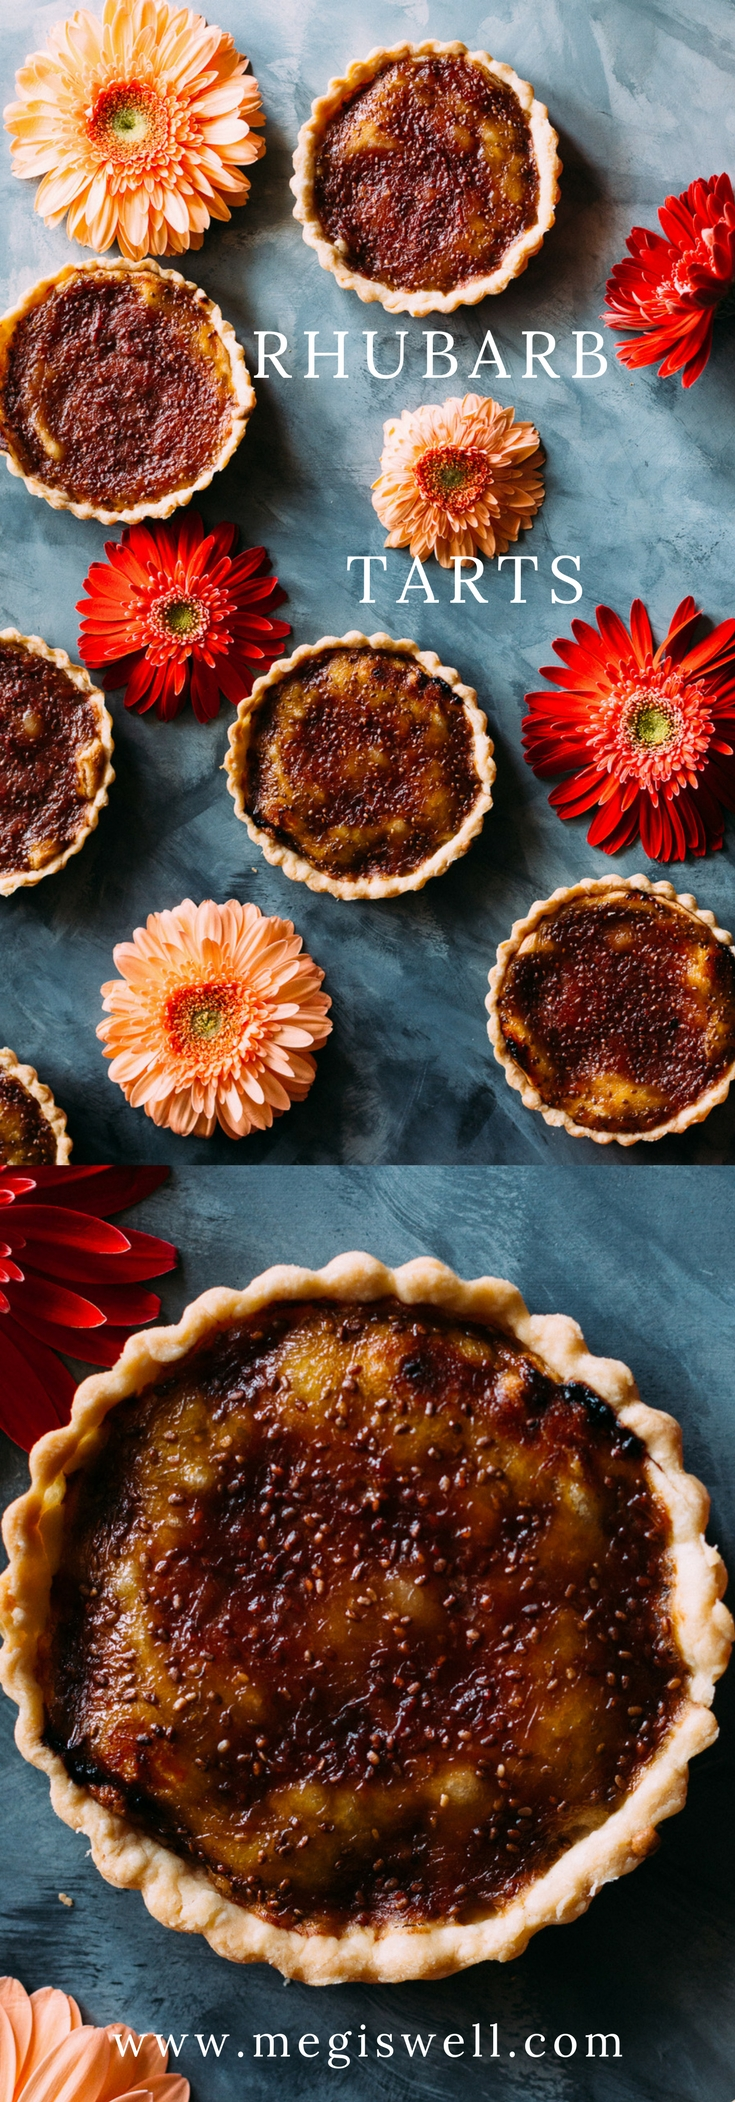 Rhubarb Tarts are beautiful bites of perfection with a buttery flaky crust, sweet marzipan filling, and a tart rhubarb chia seed jam top perfect for celebrating Mother's Day. #mothersday #rhubarb #tarts #desserts